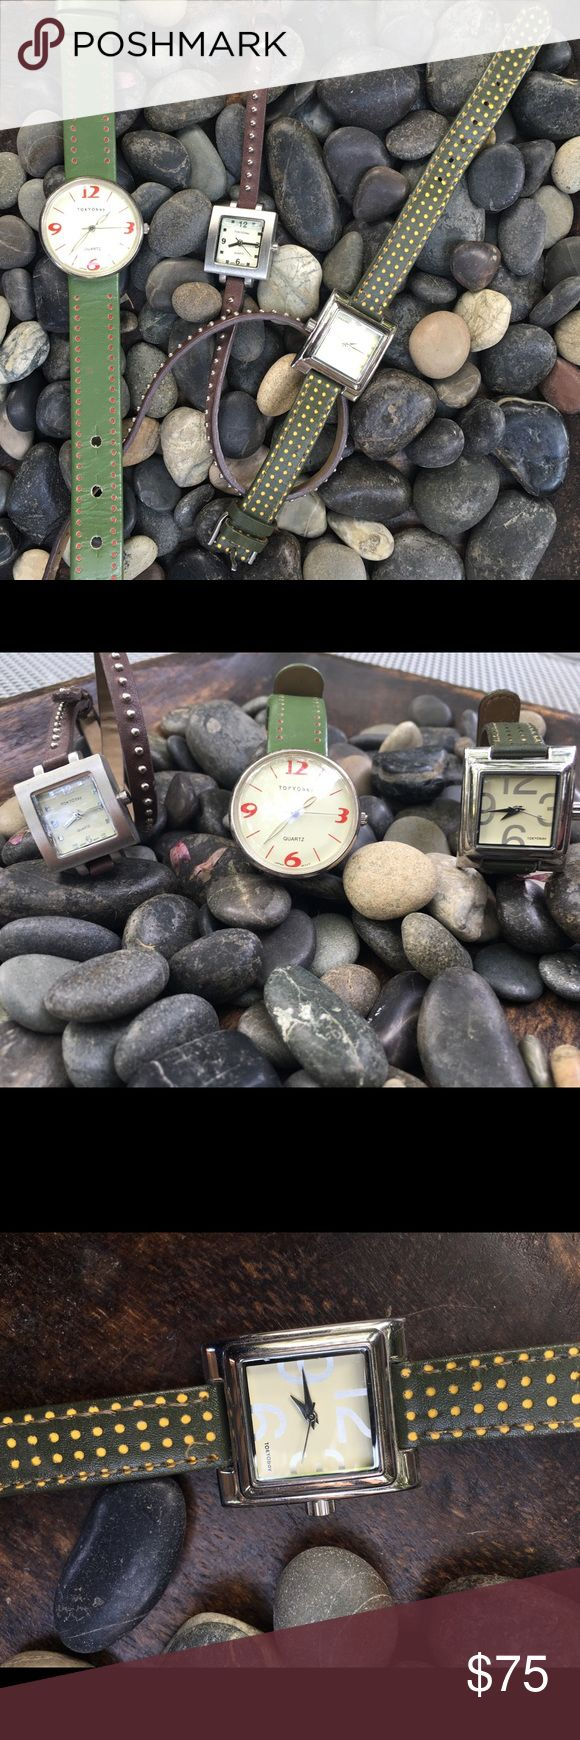 Set of 3 Tokyo Bay watches A fun mix of watch styles from Tokyo bay. All in good condition. Tokyo Bay Accessories Watches